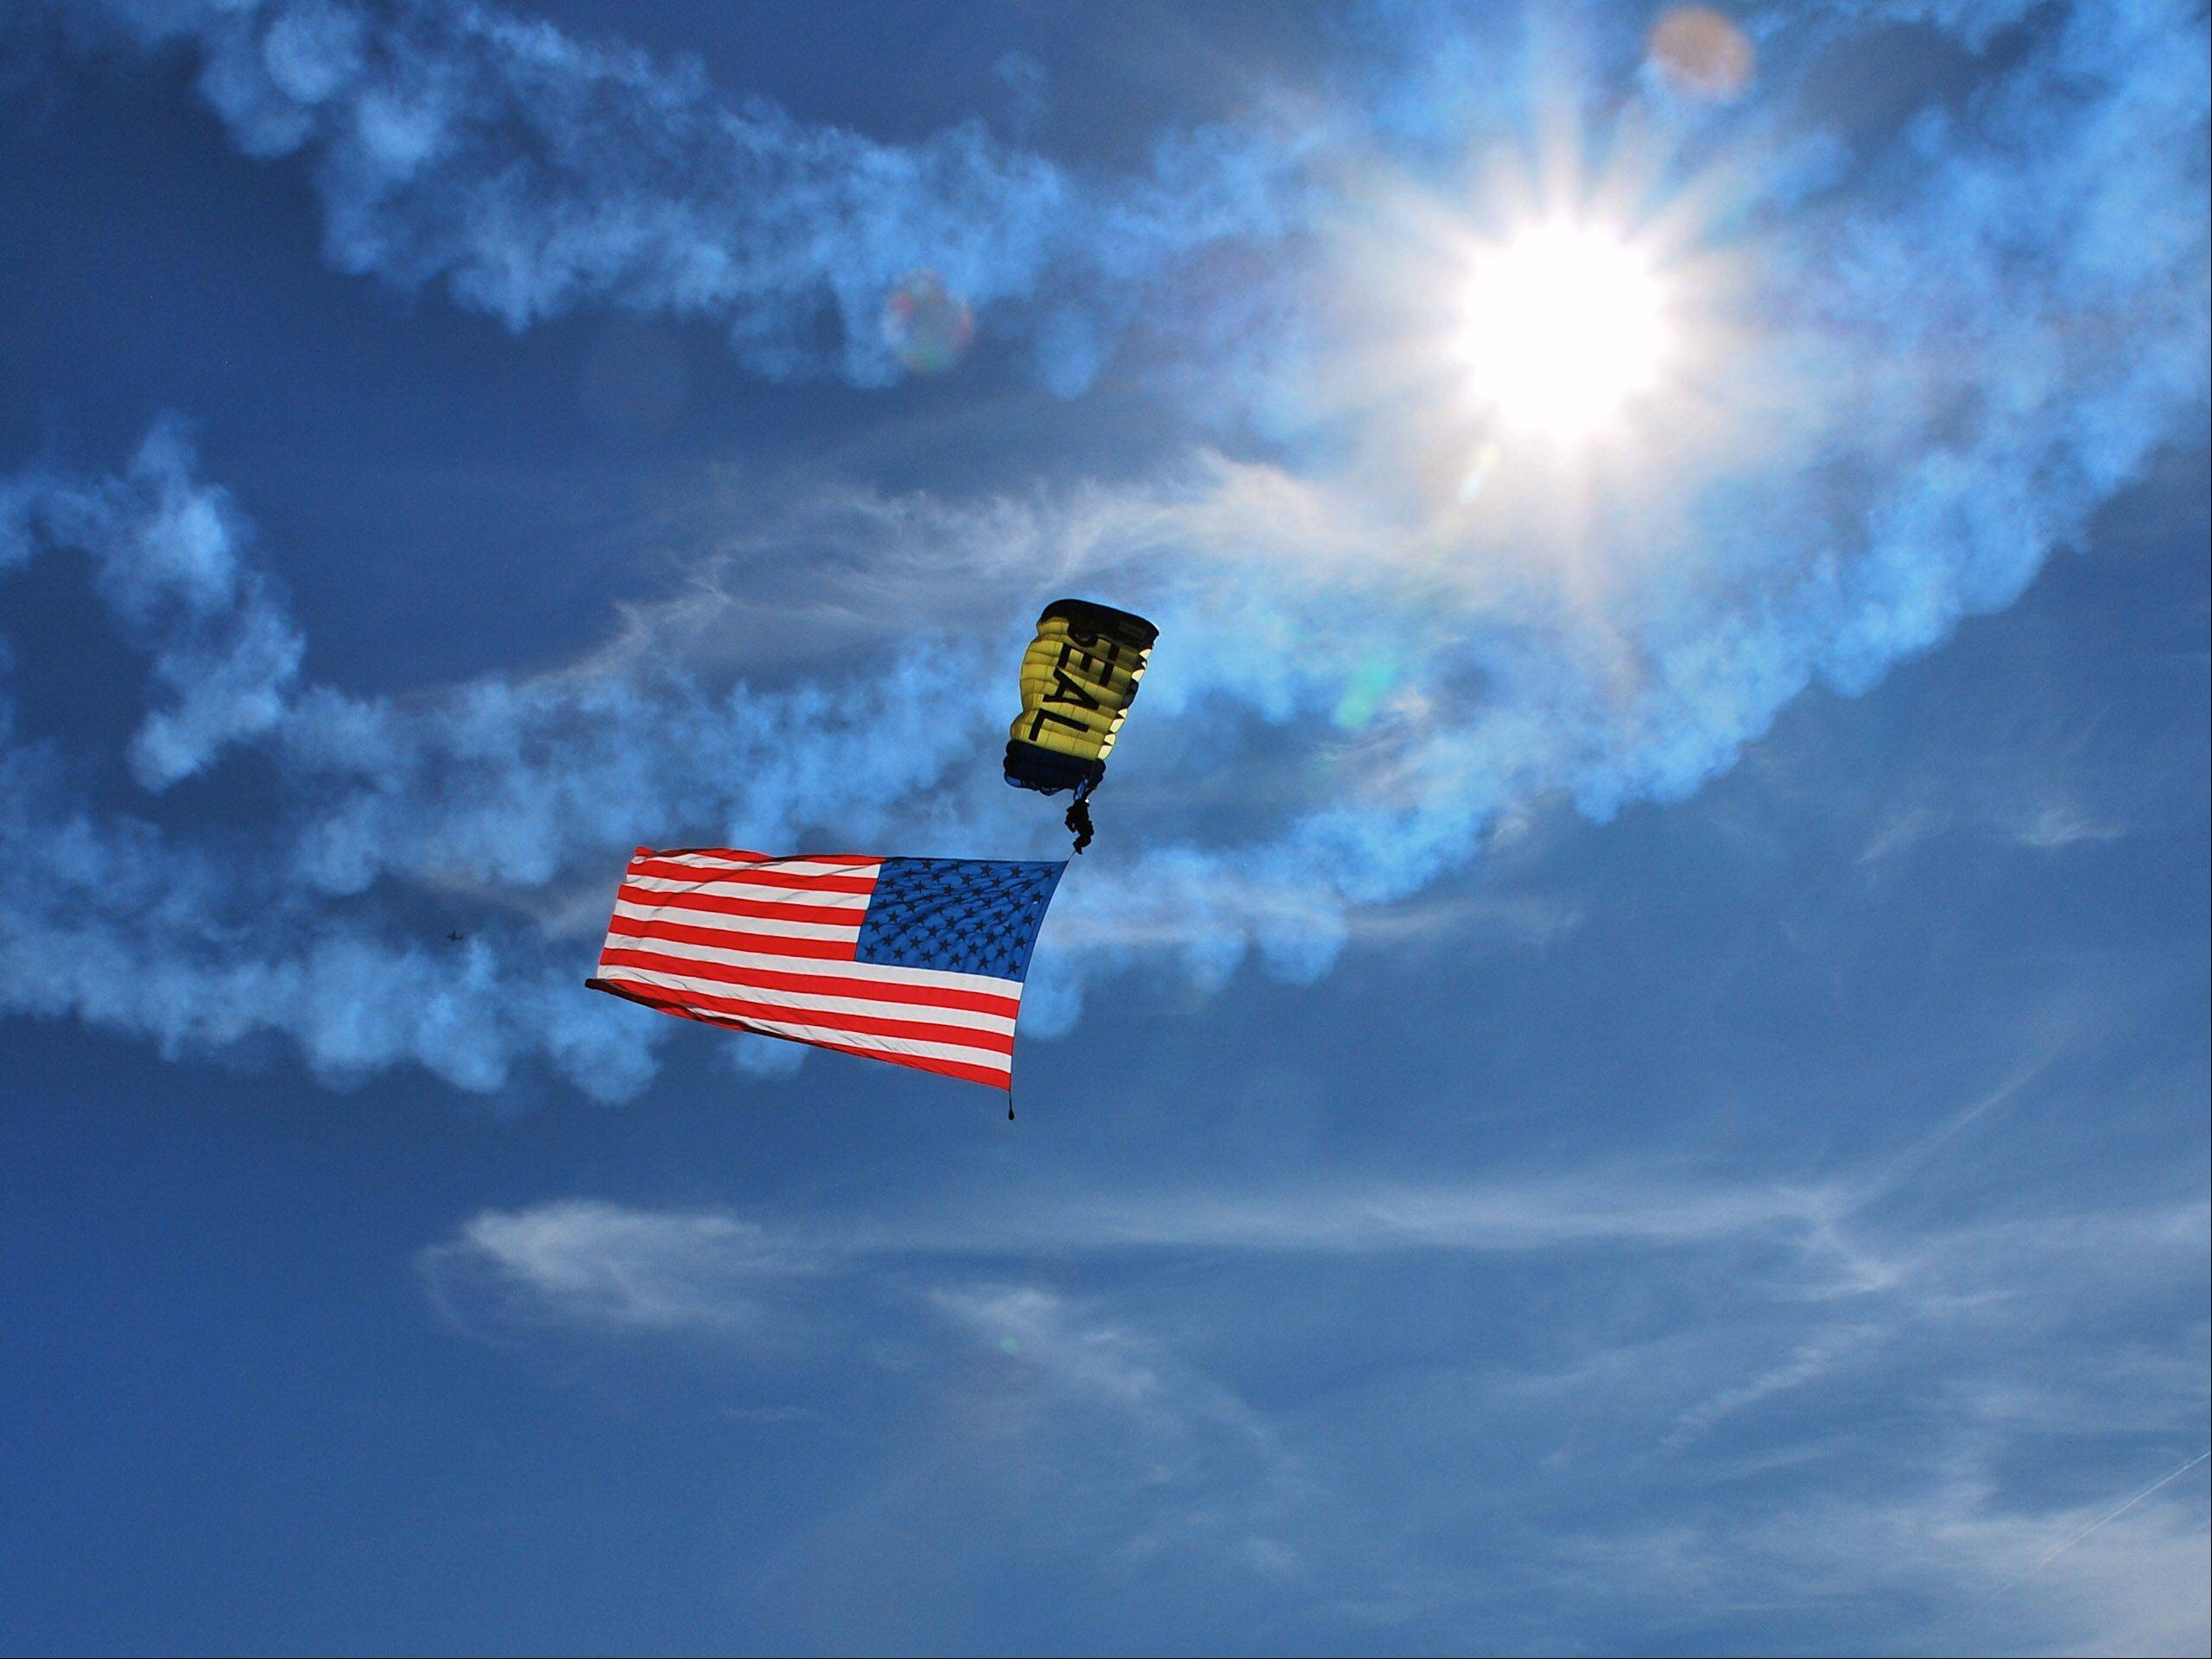 This was taken at the Chicago Water and Airshow 2012.